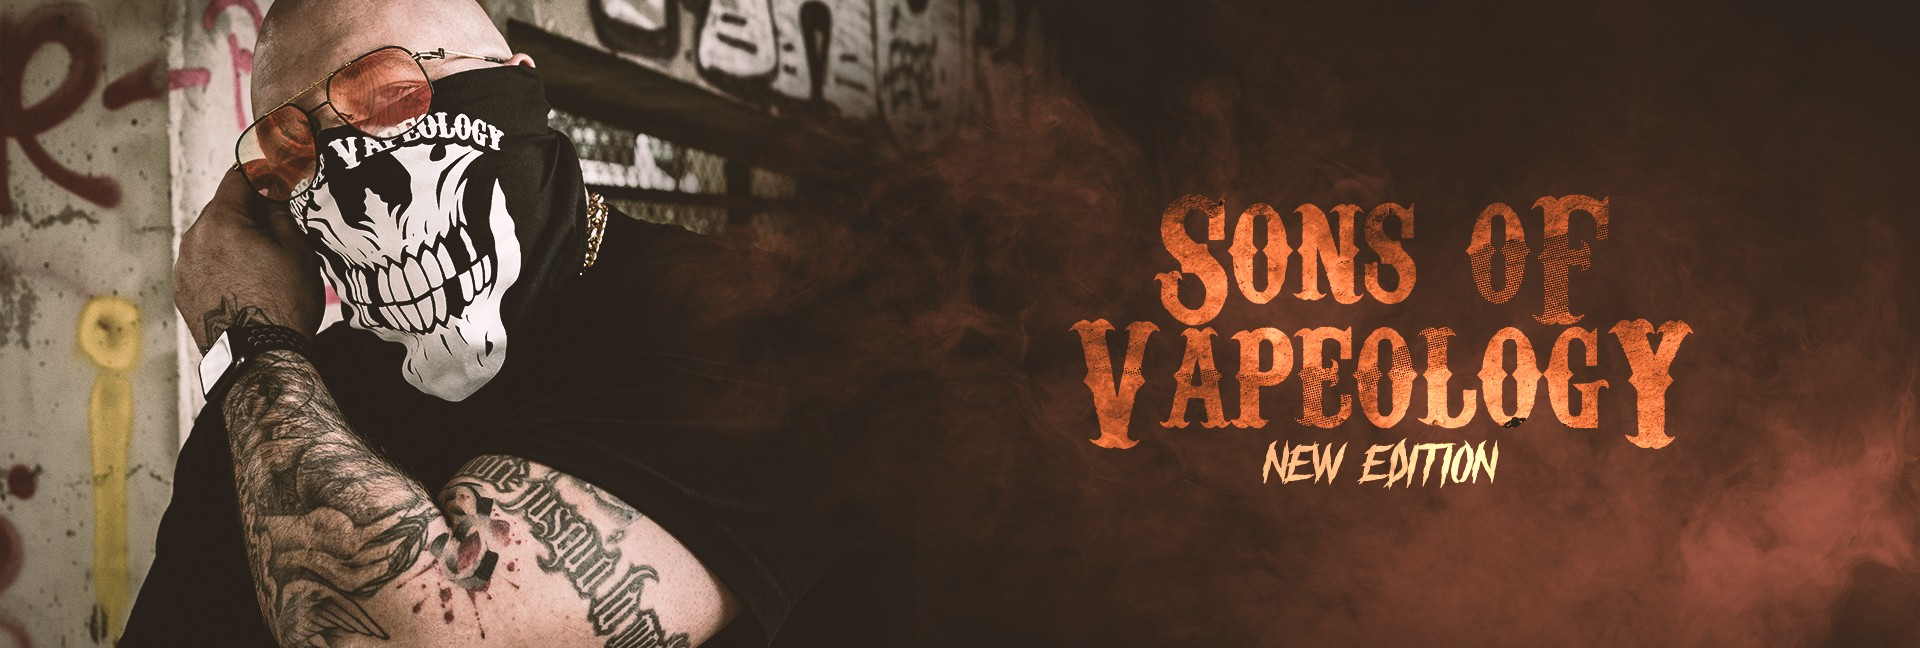 sons of vapeology new edition